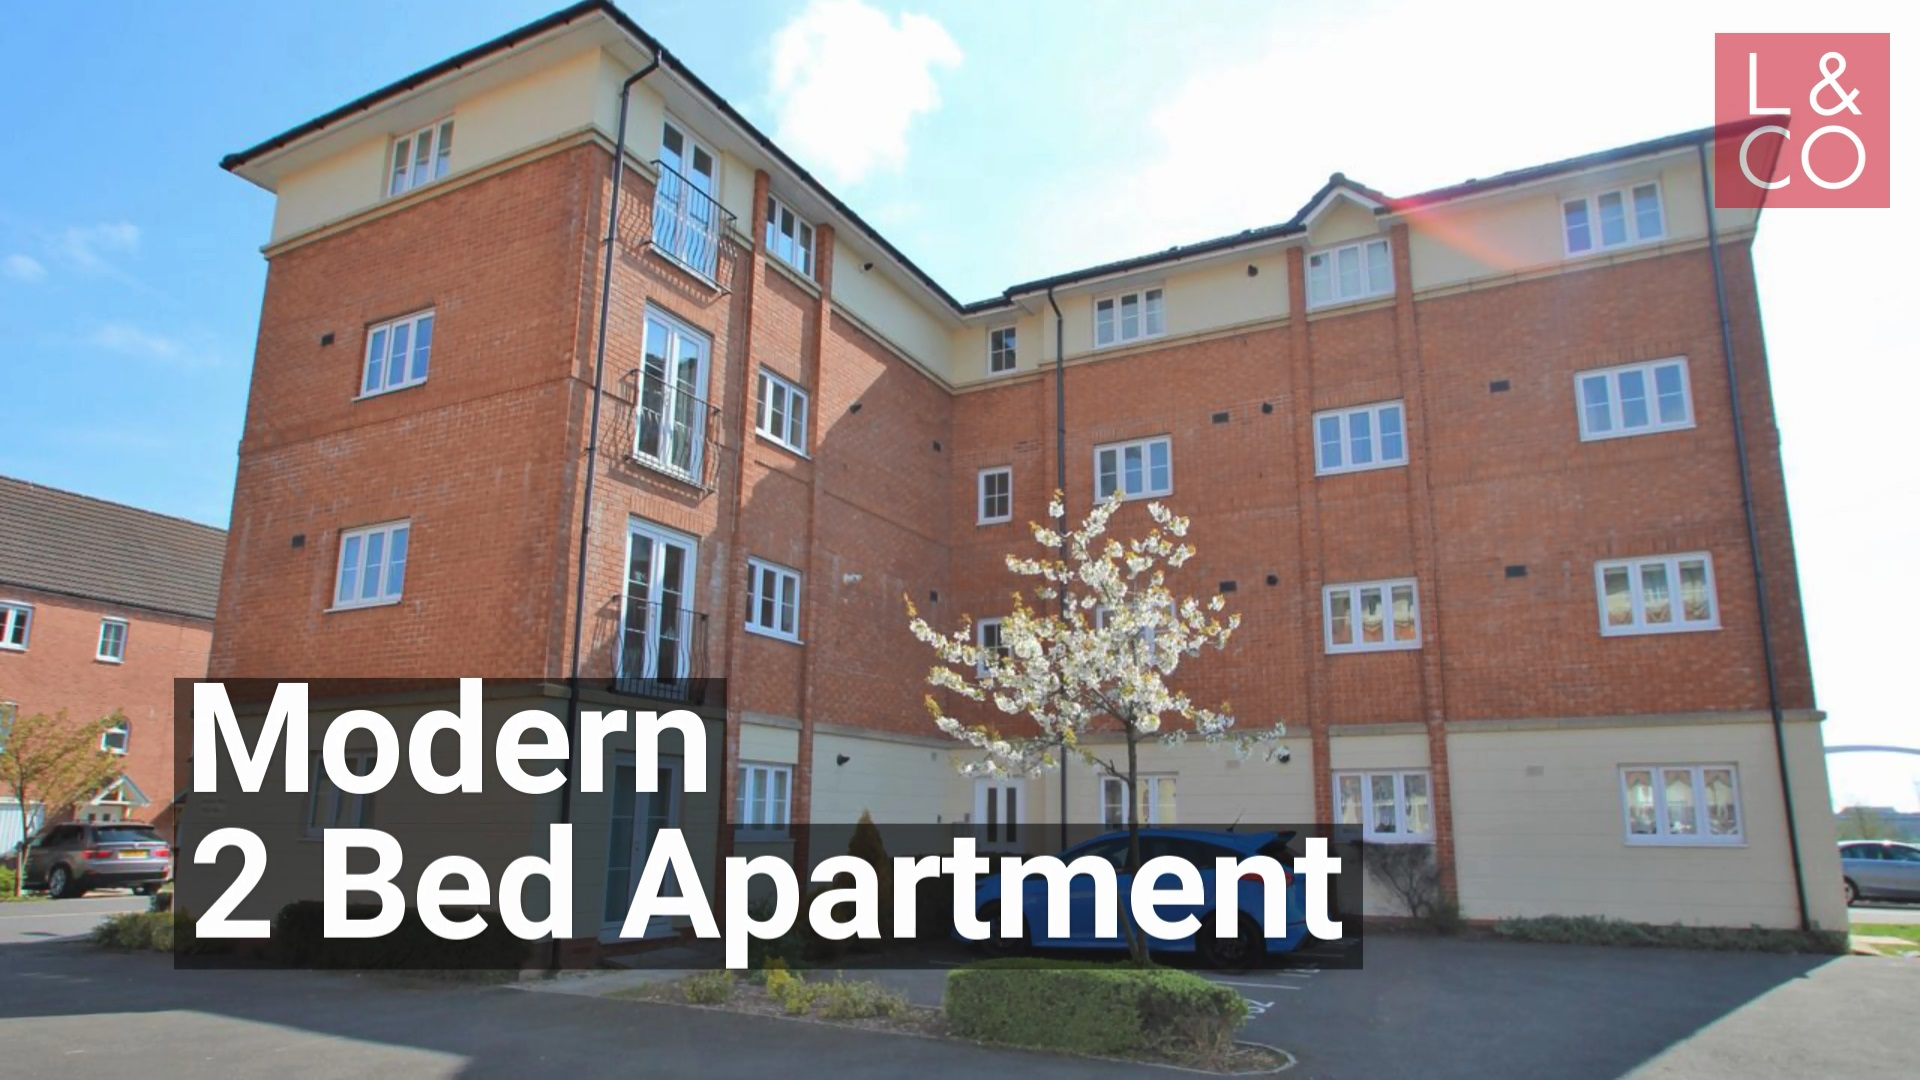 FURNISHED WATERSIDE APARTMENT - Argosy Way, Newport